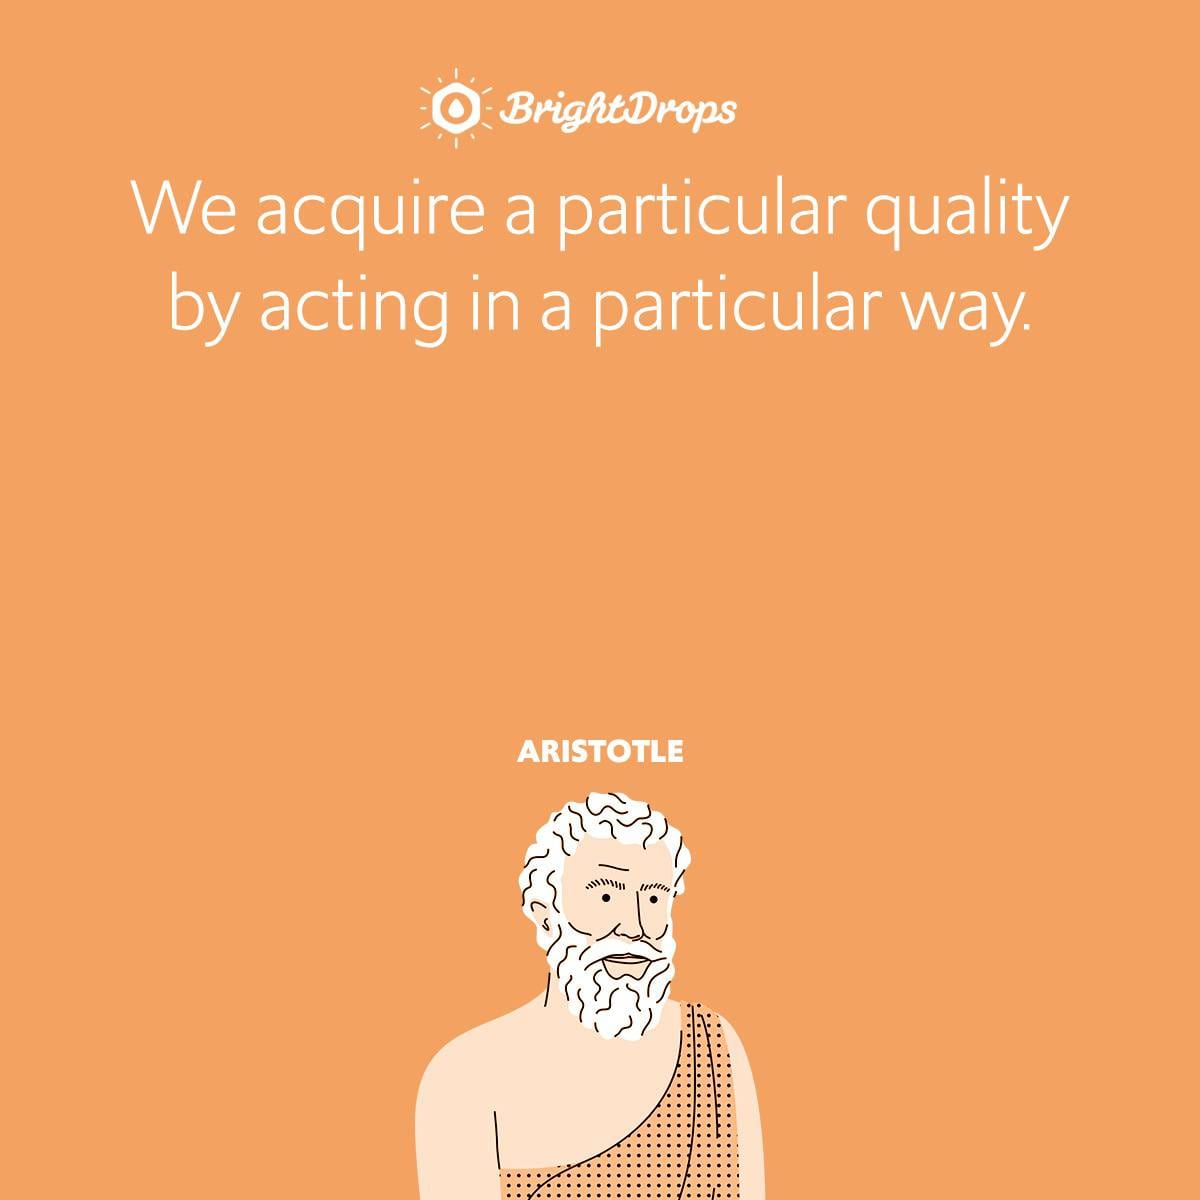 We acquire a particular quality by acting in a particular way.